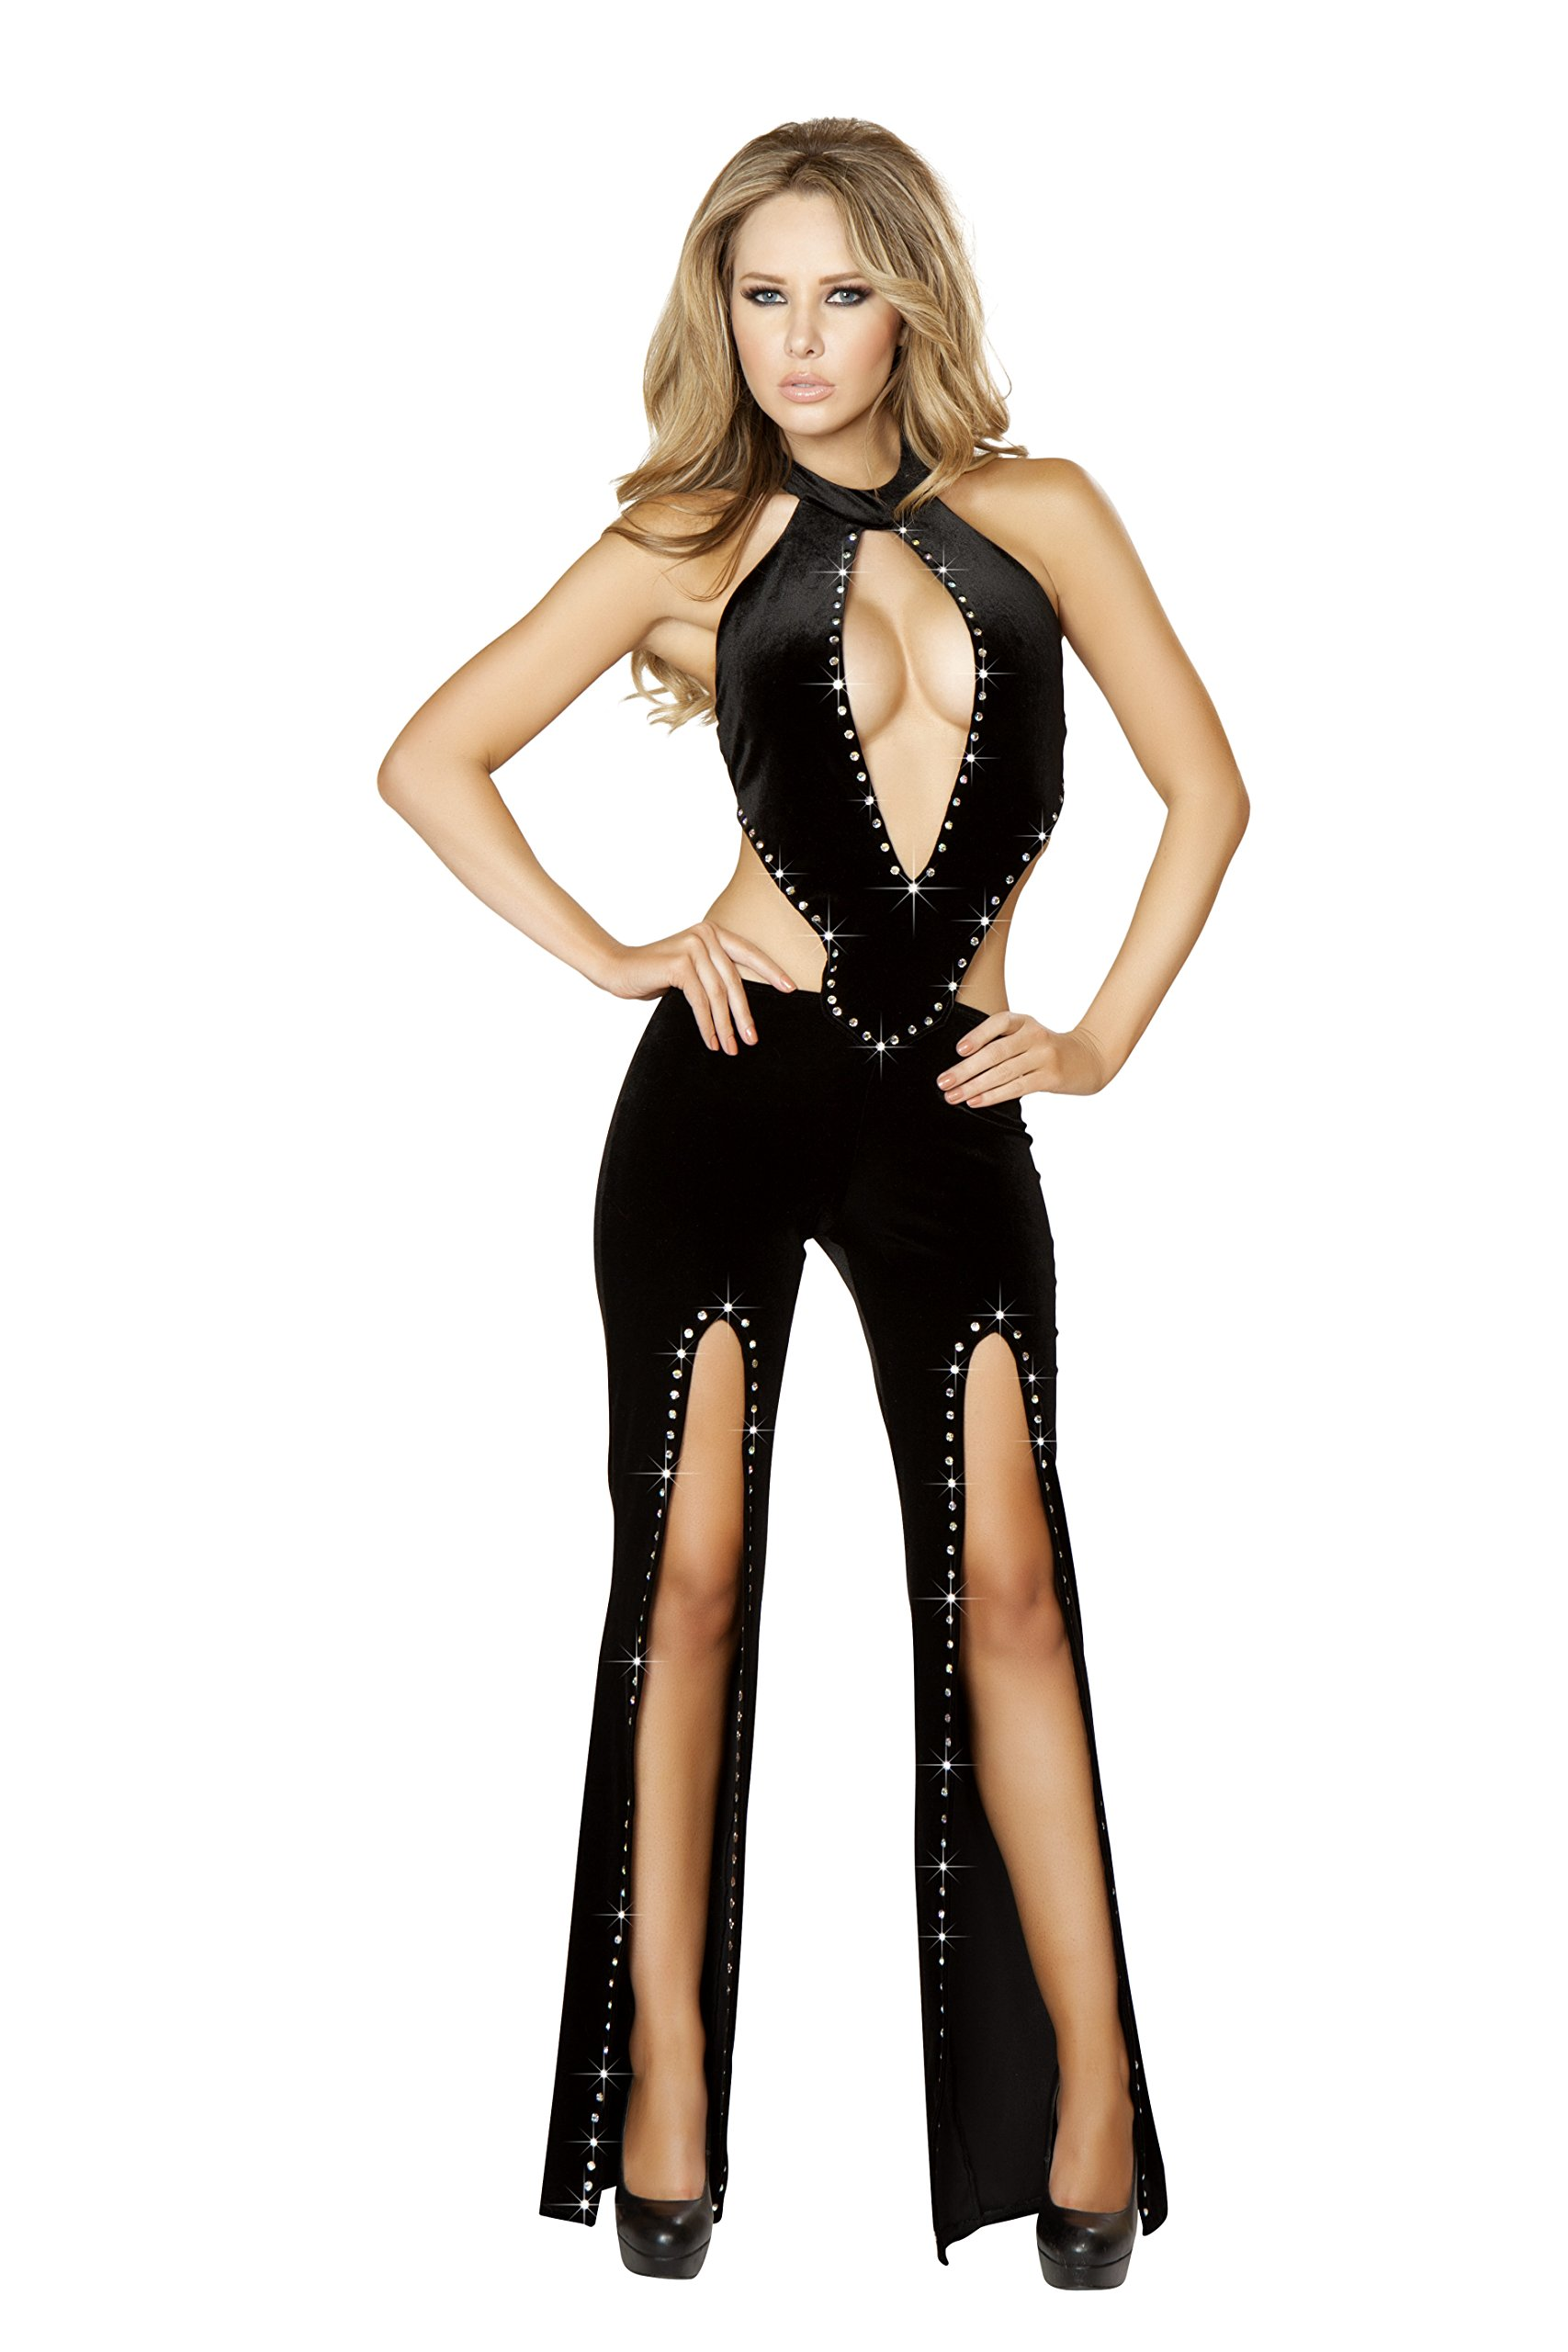 Roma Women's Velvet Cropped Jumpsuit with Slit Legs and Rhinestone Detail, Black, Large